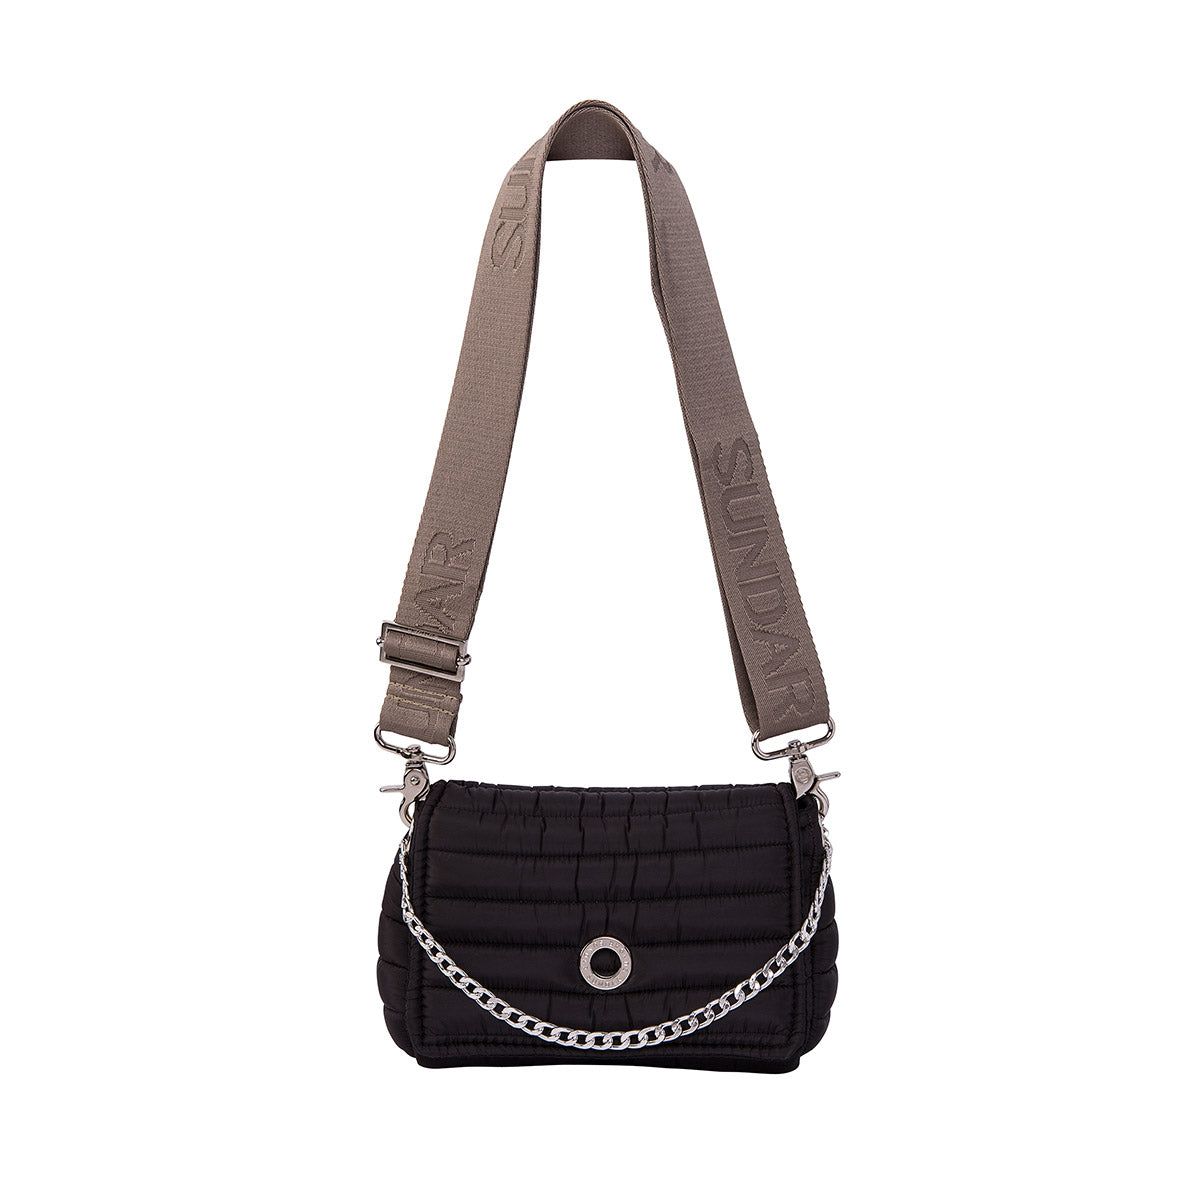 Andrea Black with two Straps (Chain Strap/ Beige Adjustable Strap)